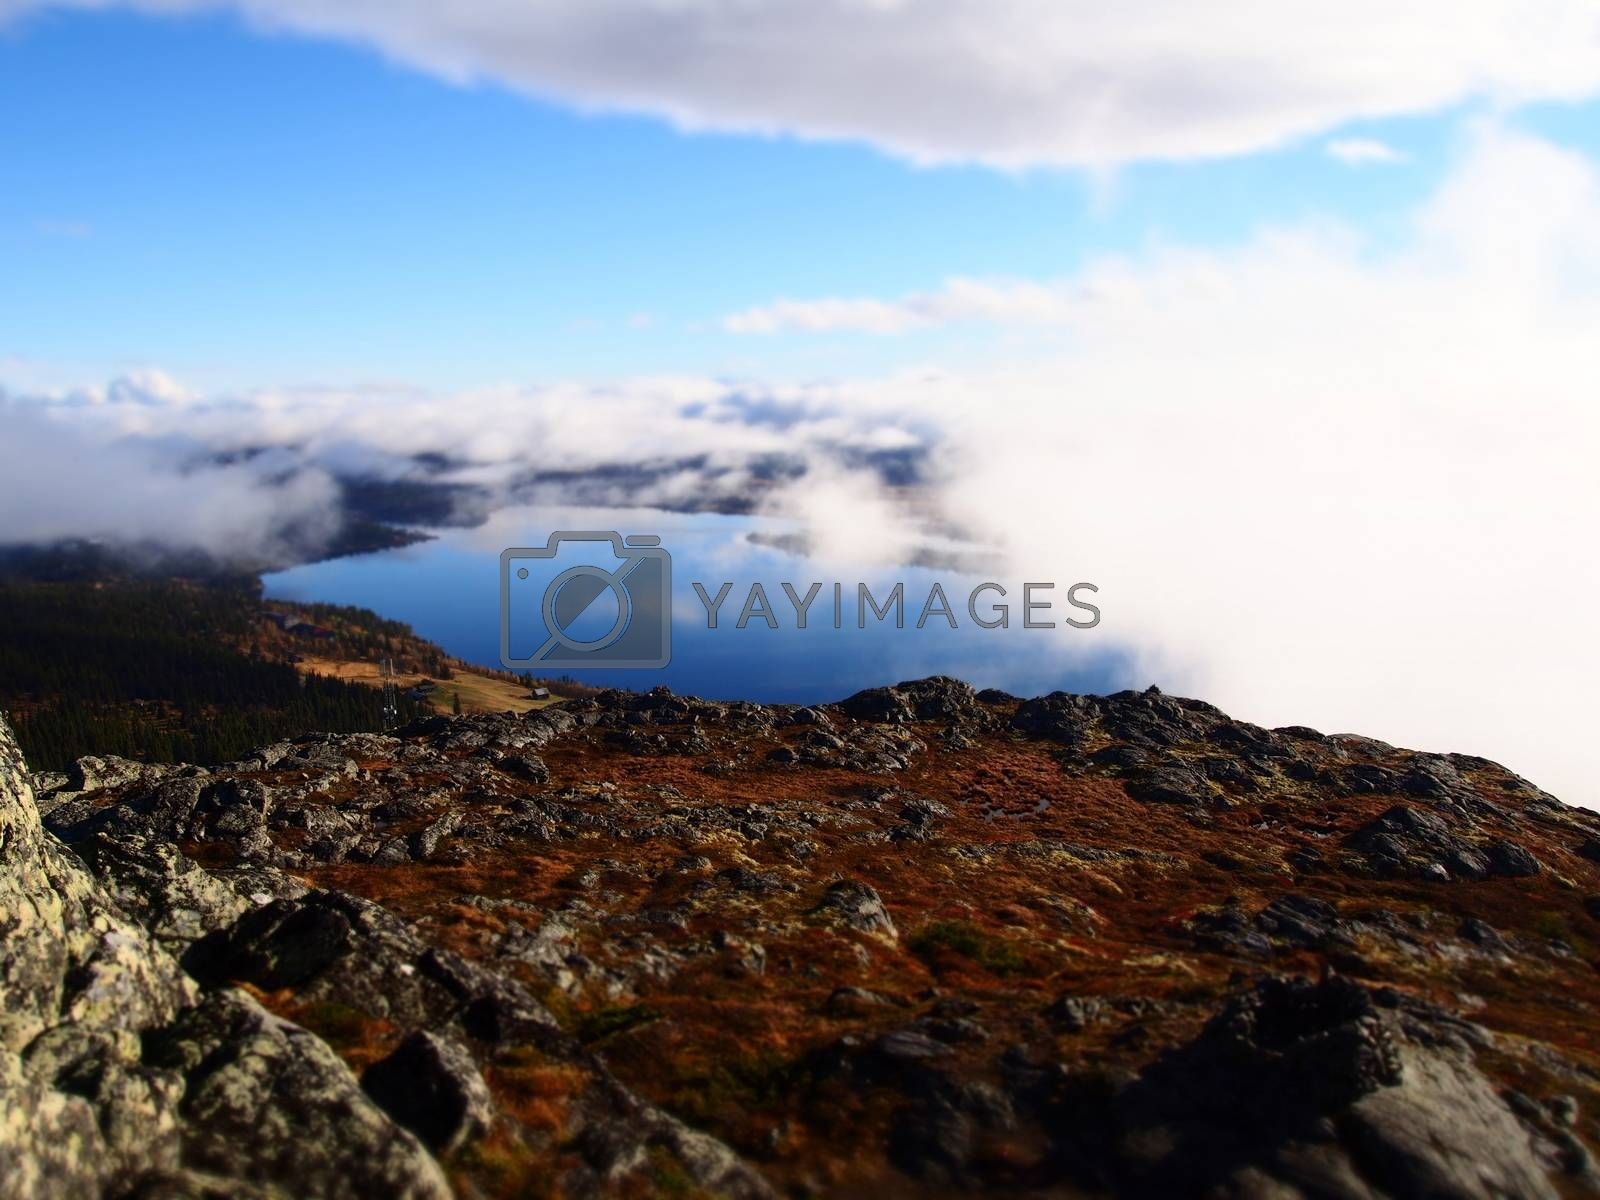 Royalty free image of Fefor, Norway by benedijo2